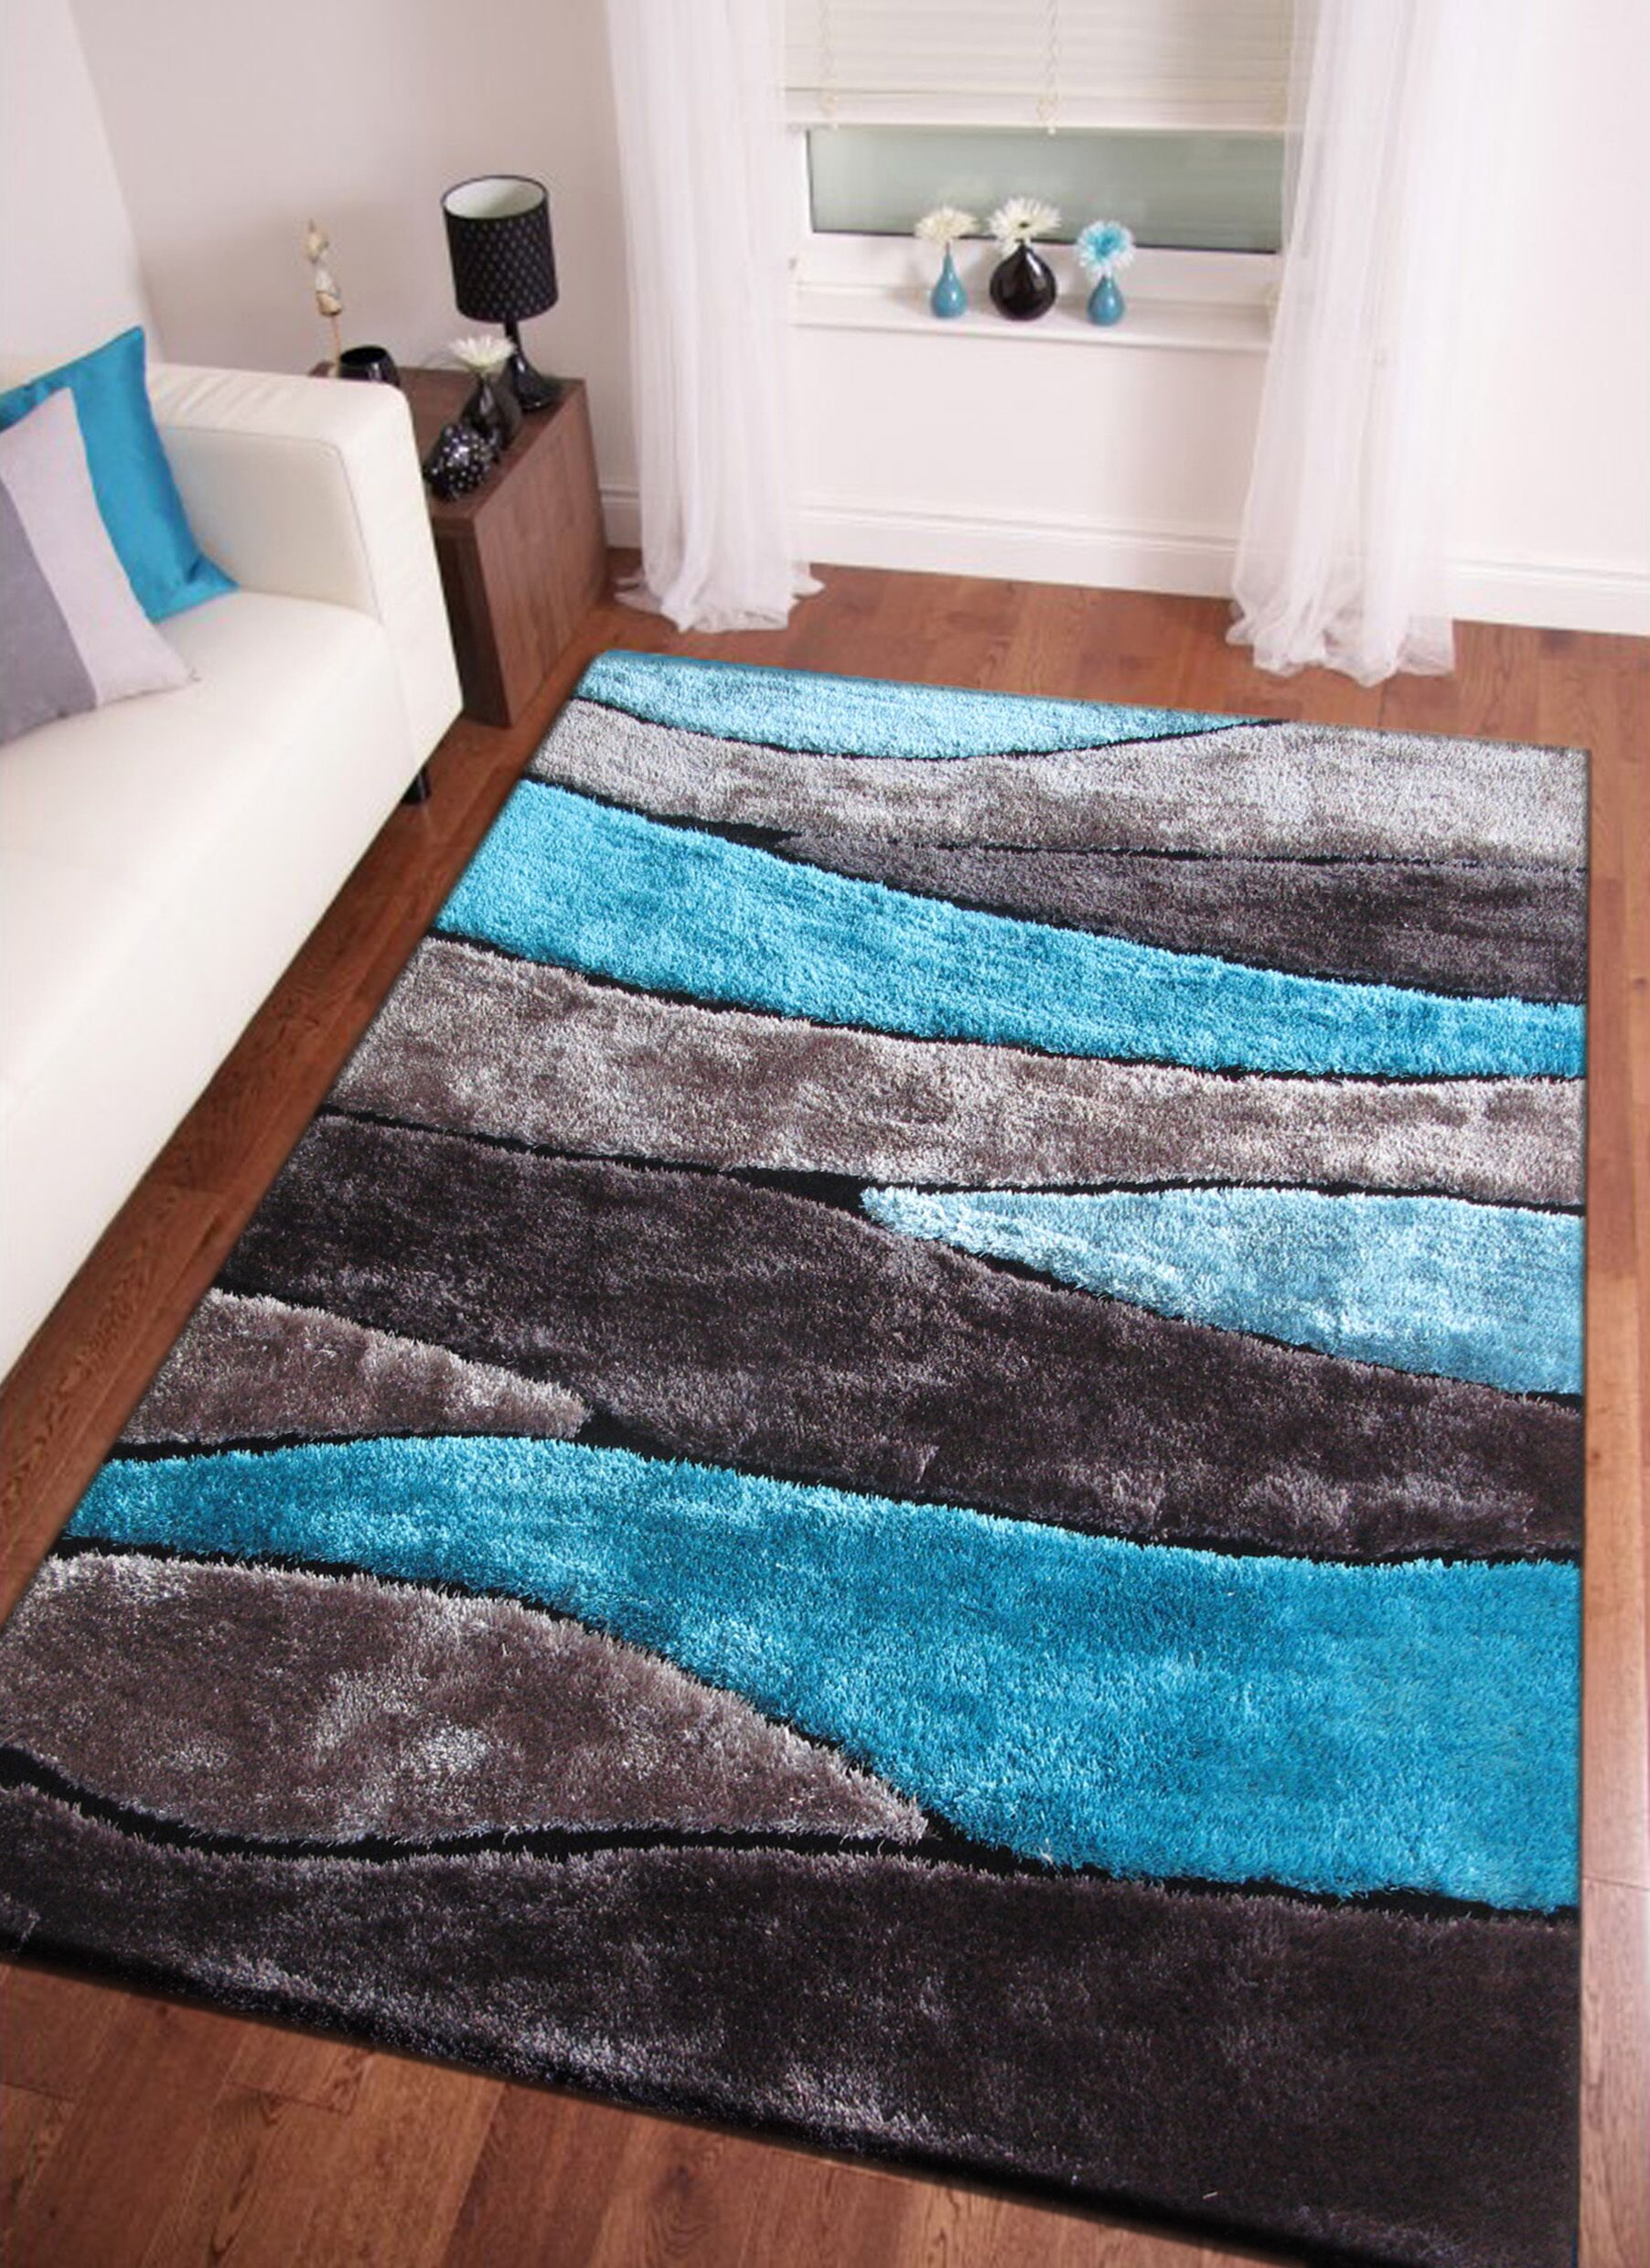 Owings Shaggy Hand-Tufted Gray/Blue Area Rug Rug Size: Rectangle 7'6